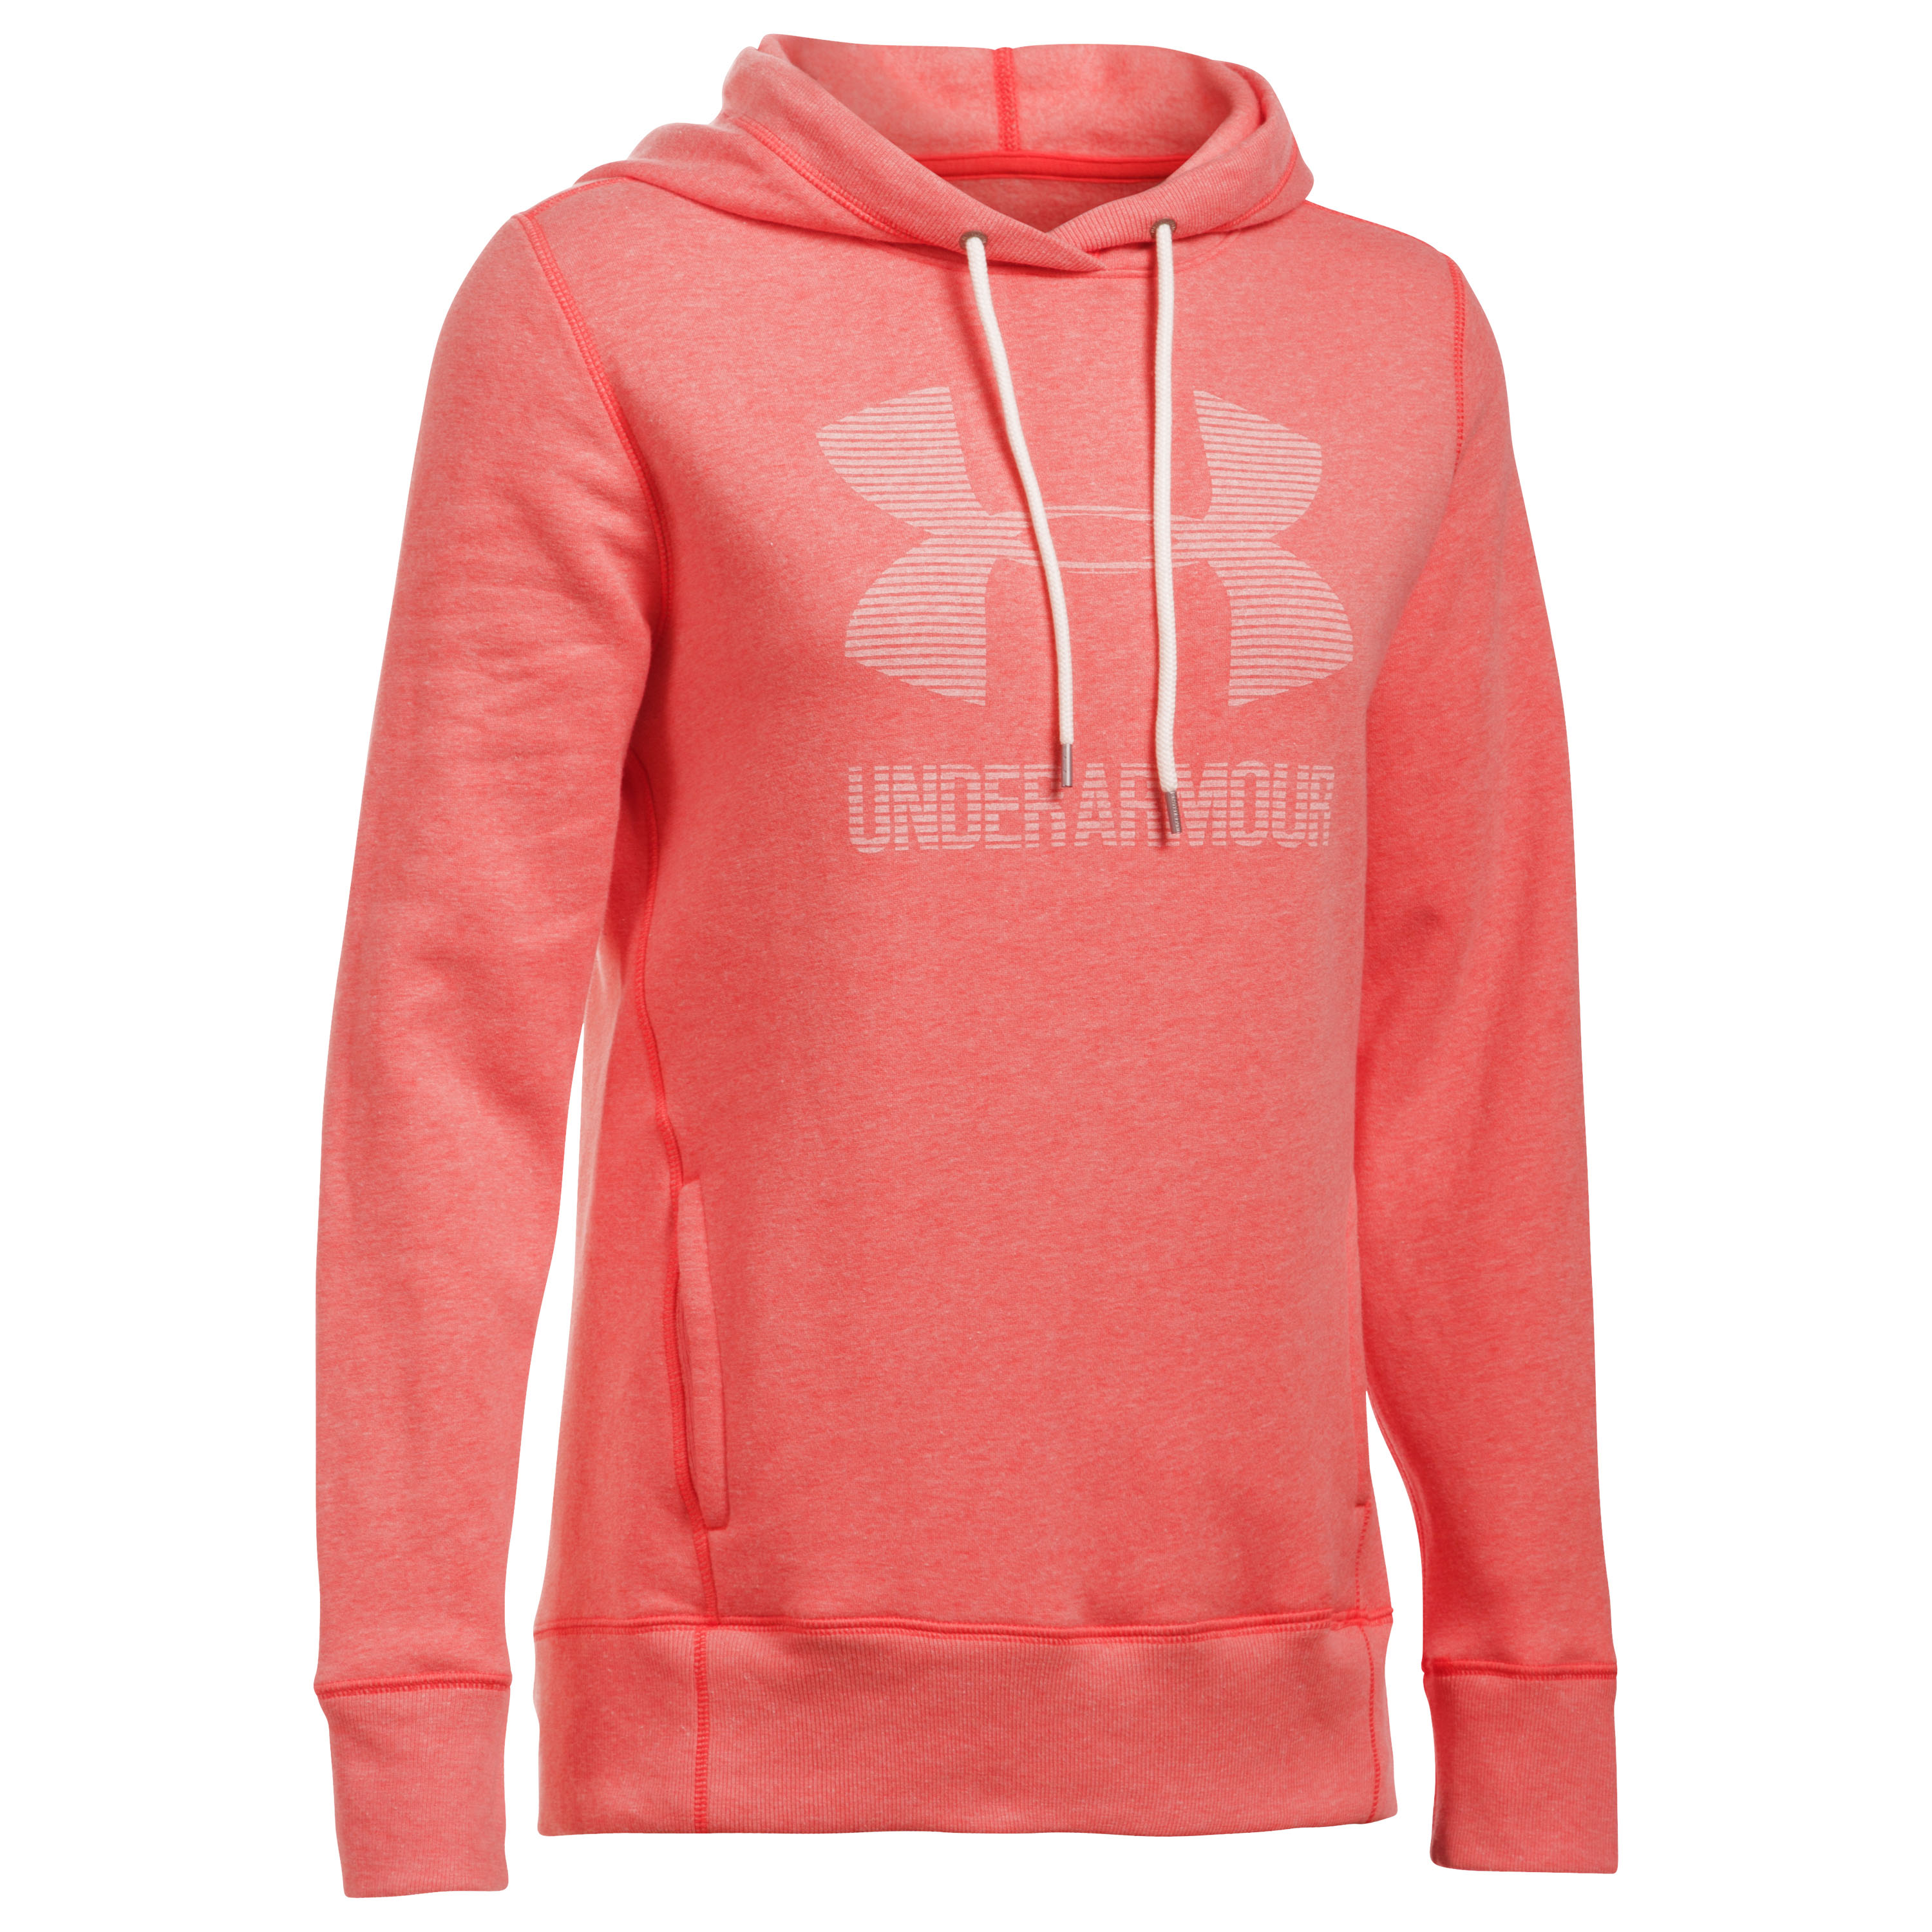 Under Armour Fitness Woman's Hoodie pink